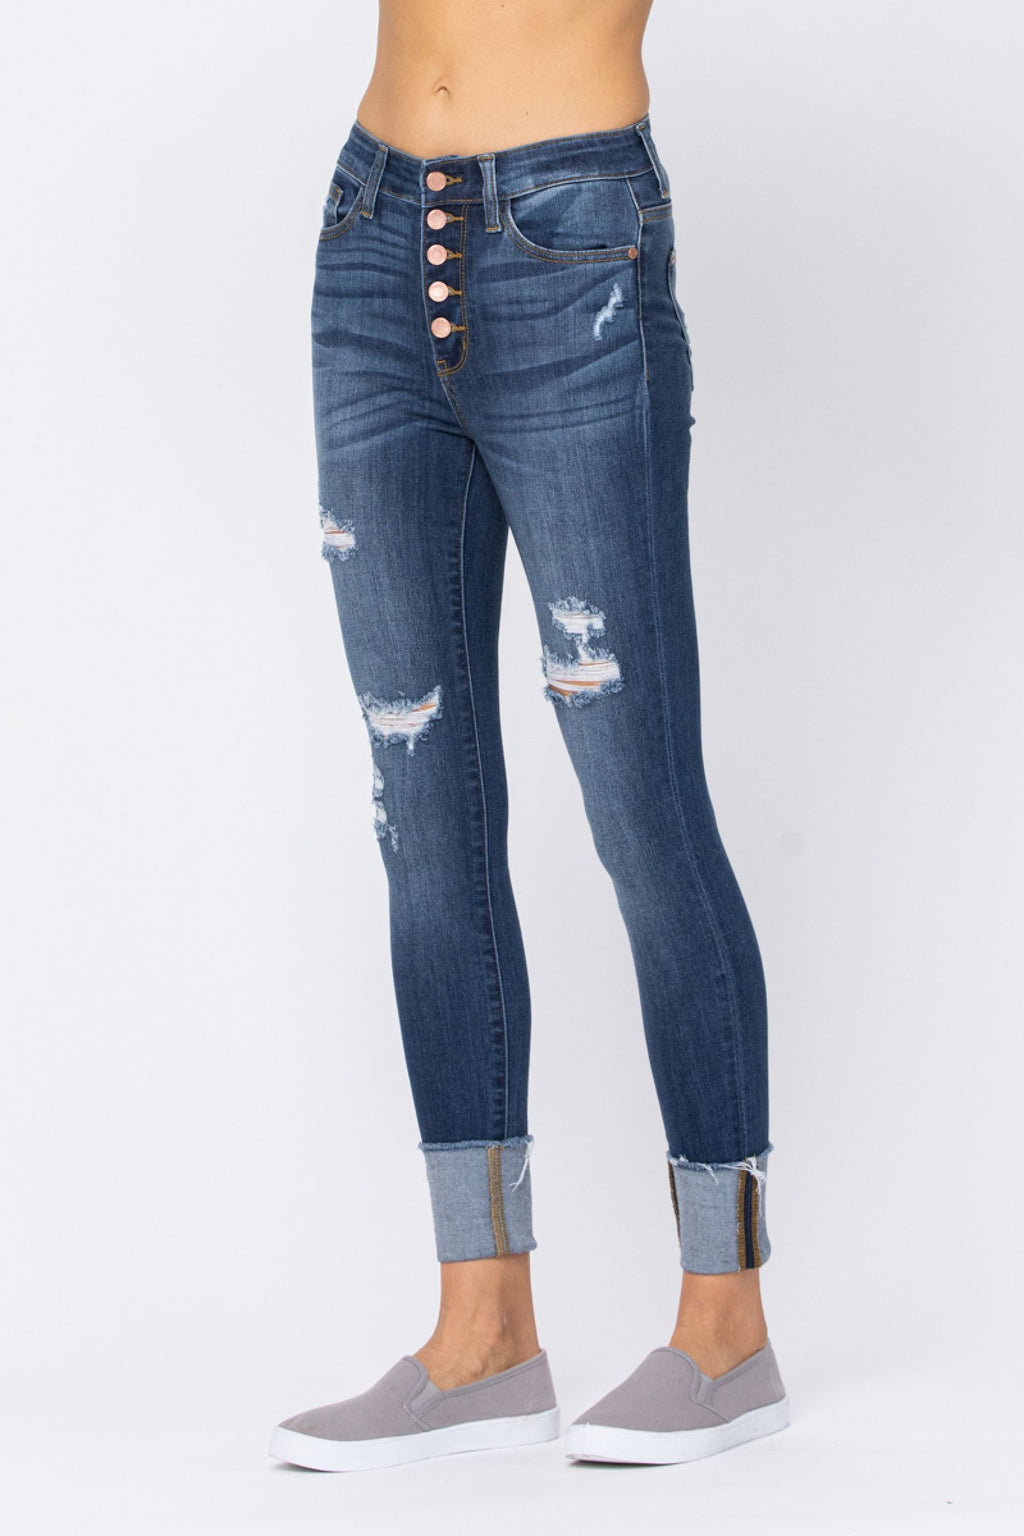 Judy Blue Button Fly Cuffed Skinny Jeans